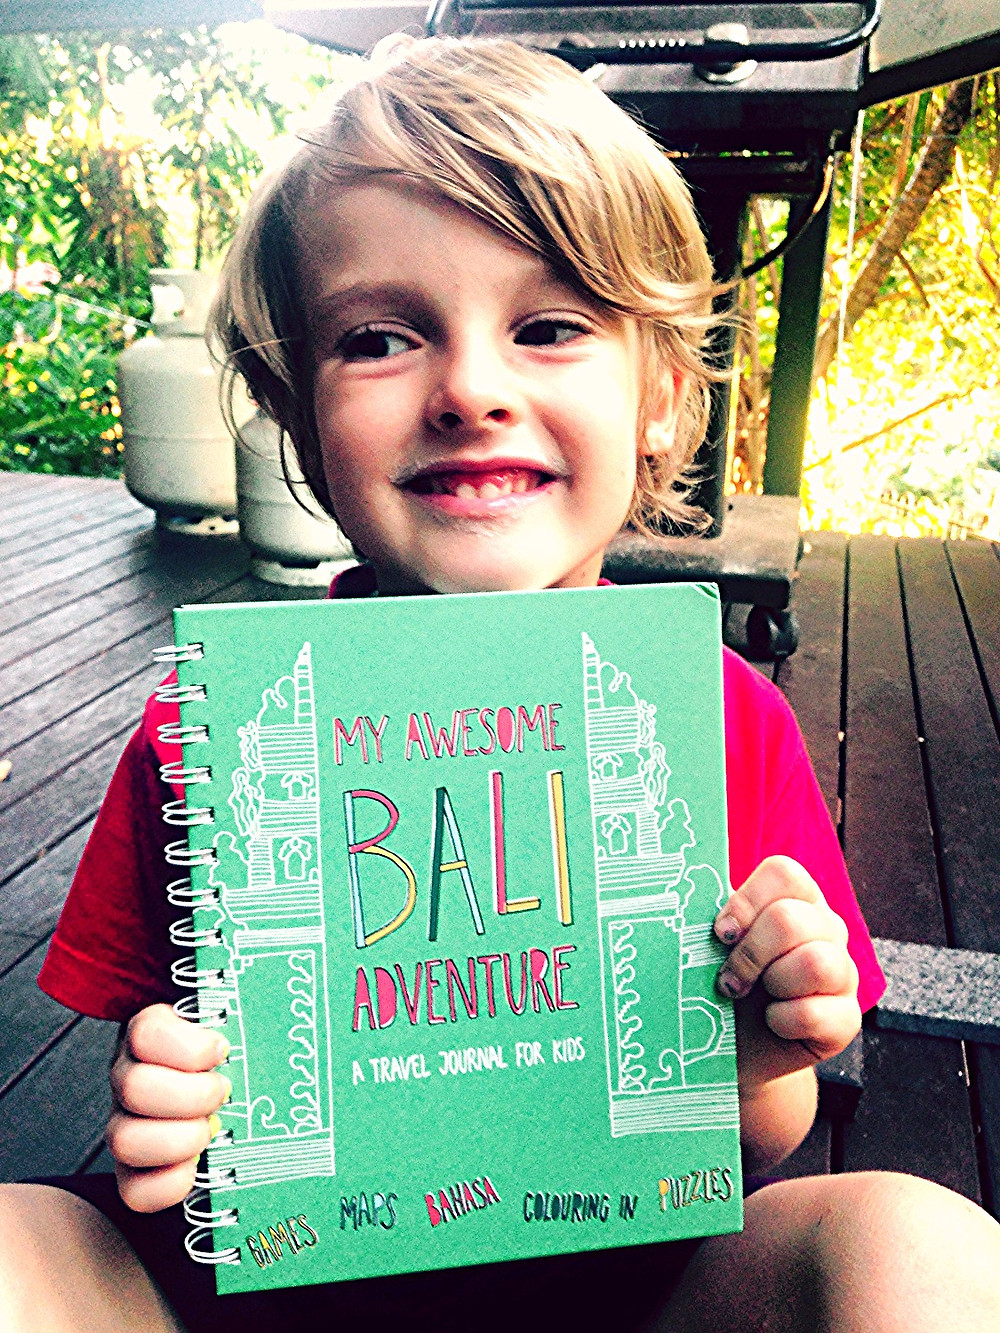 Little boy with childrens travel guide to Bali